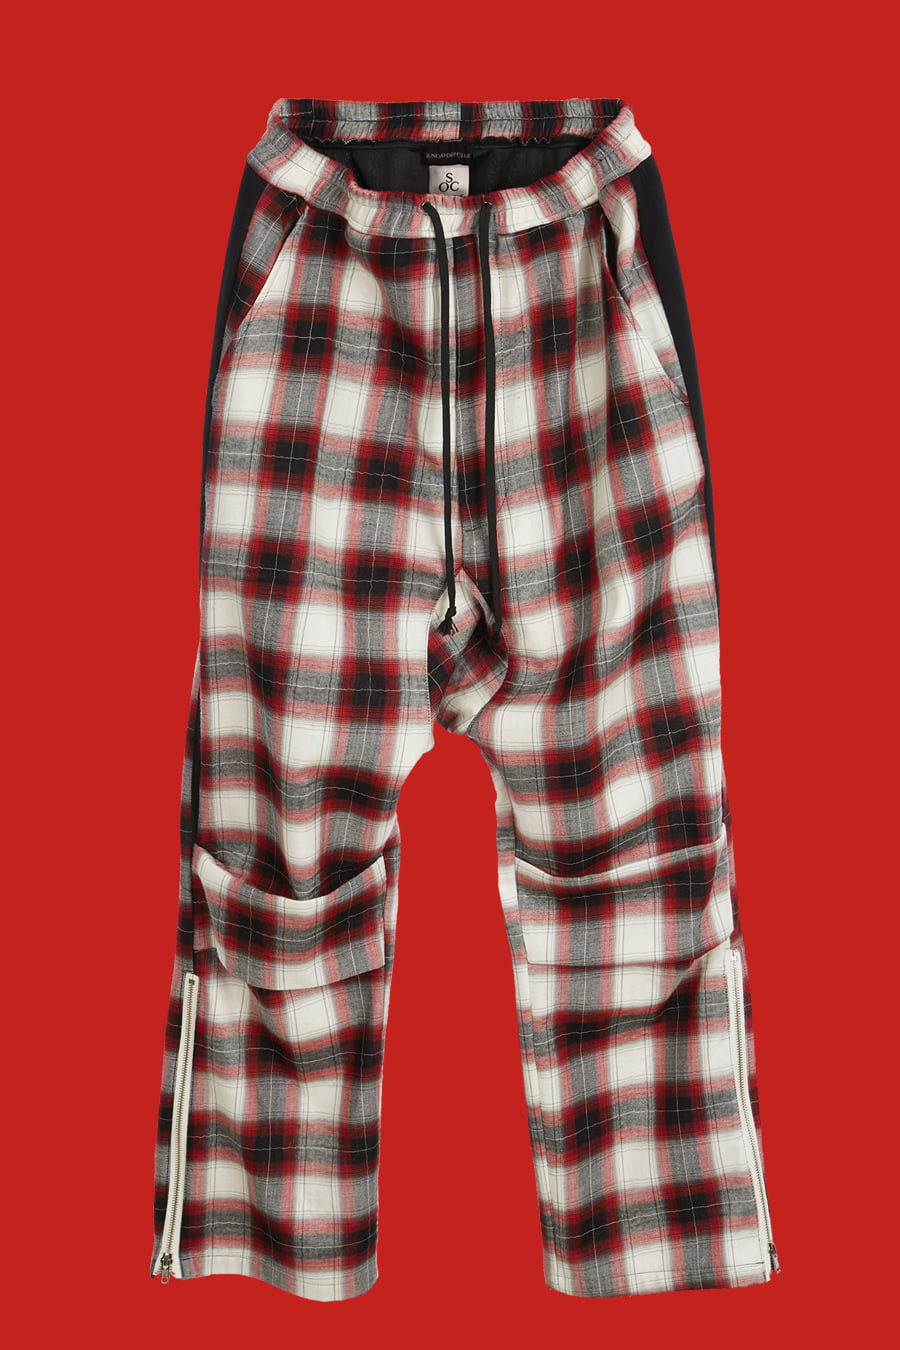 Plaid Check Drop Crotch Pants - Red